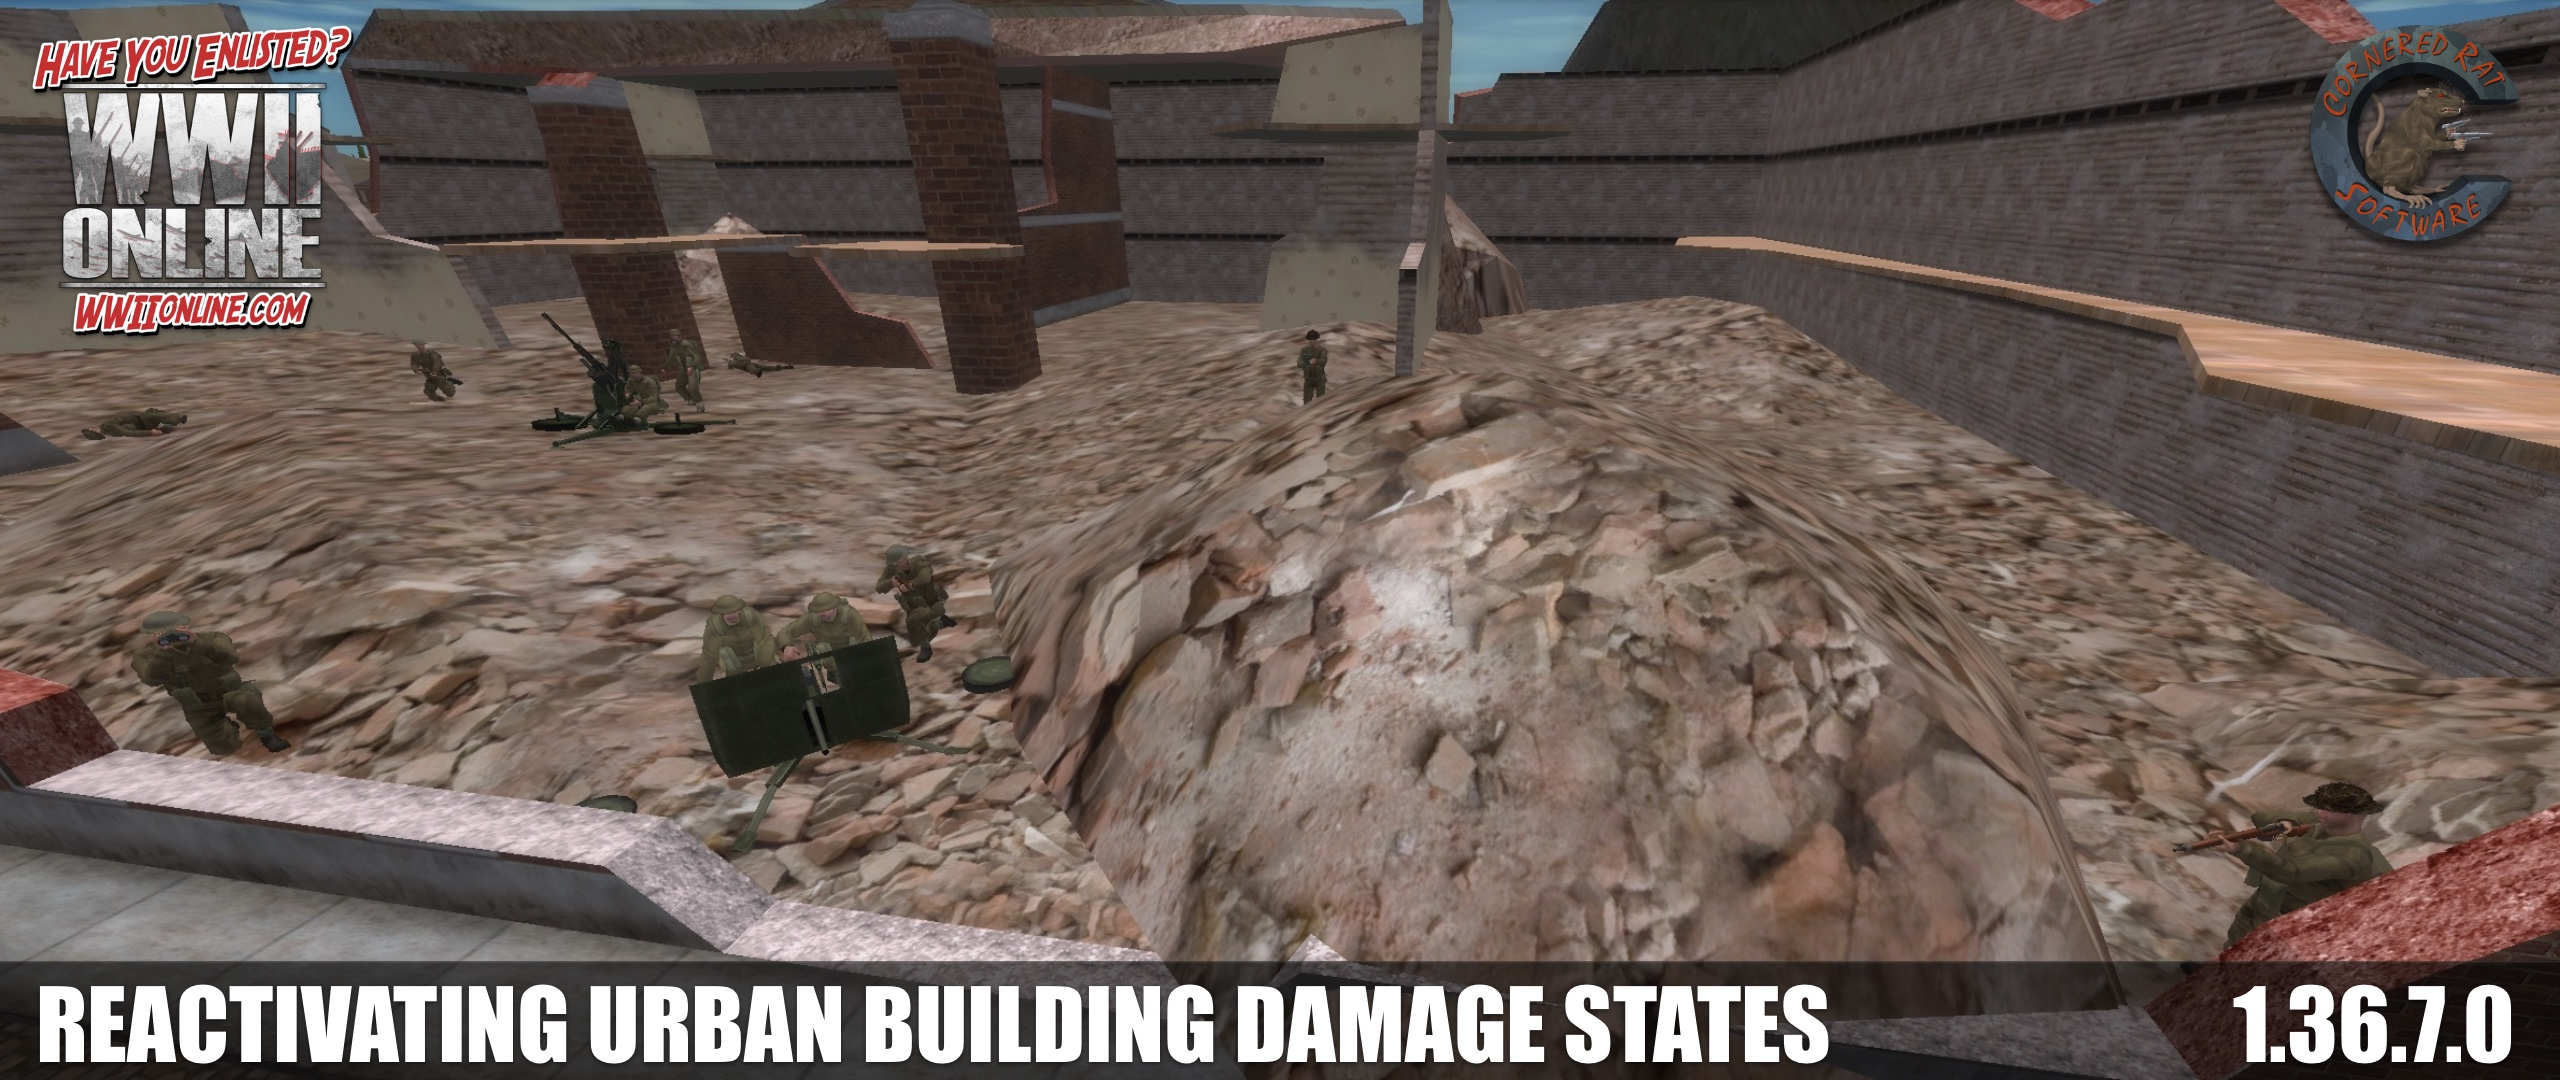 Urban Building 01: Damage state / ambush